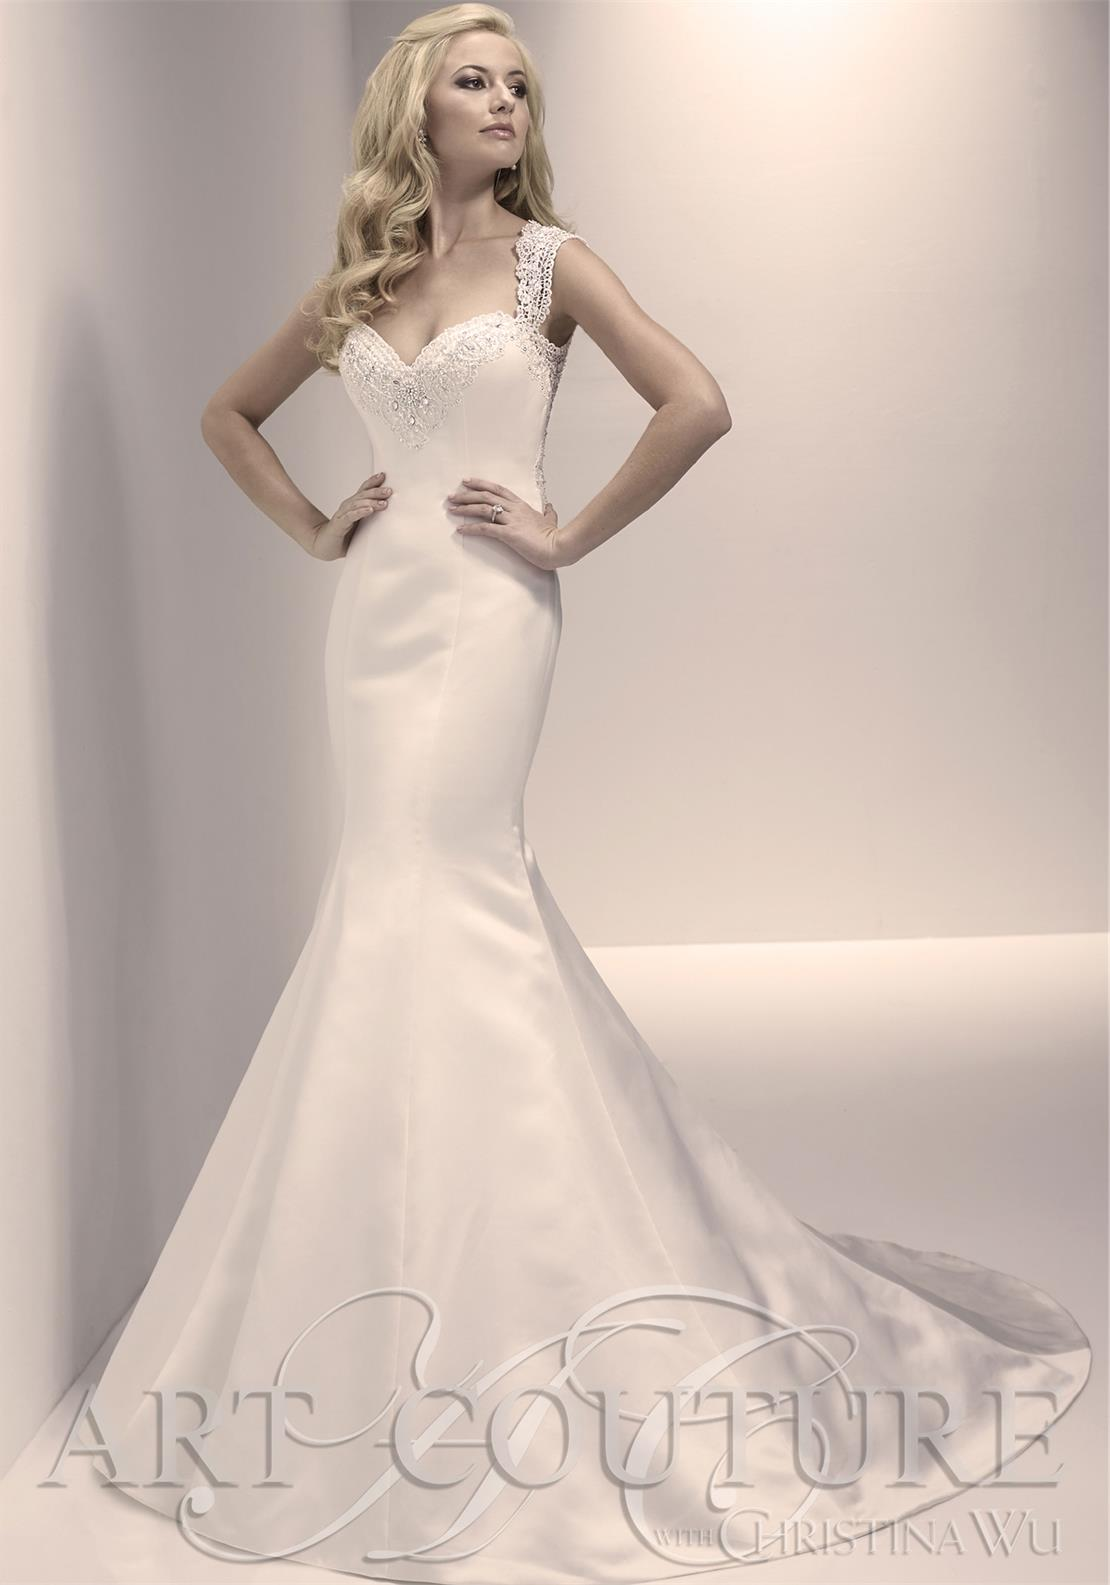 ART COUTURE BRIDAL 10S IVO